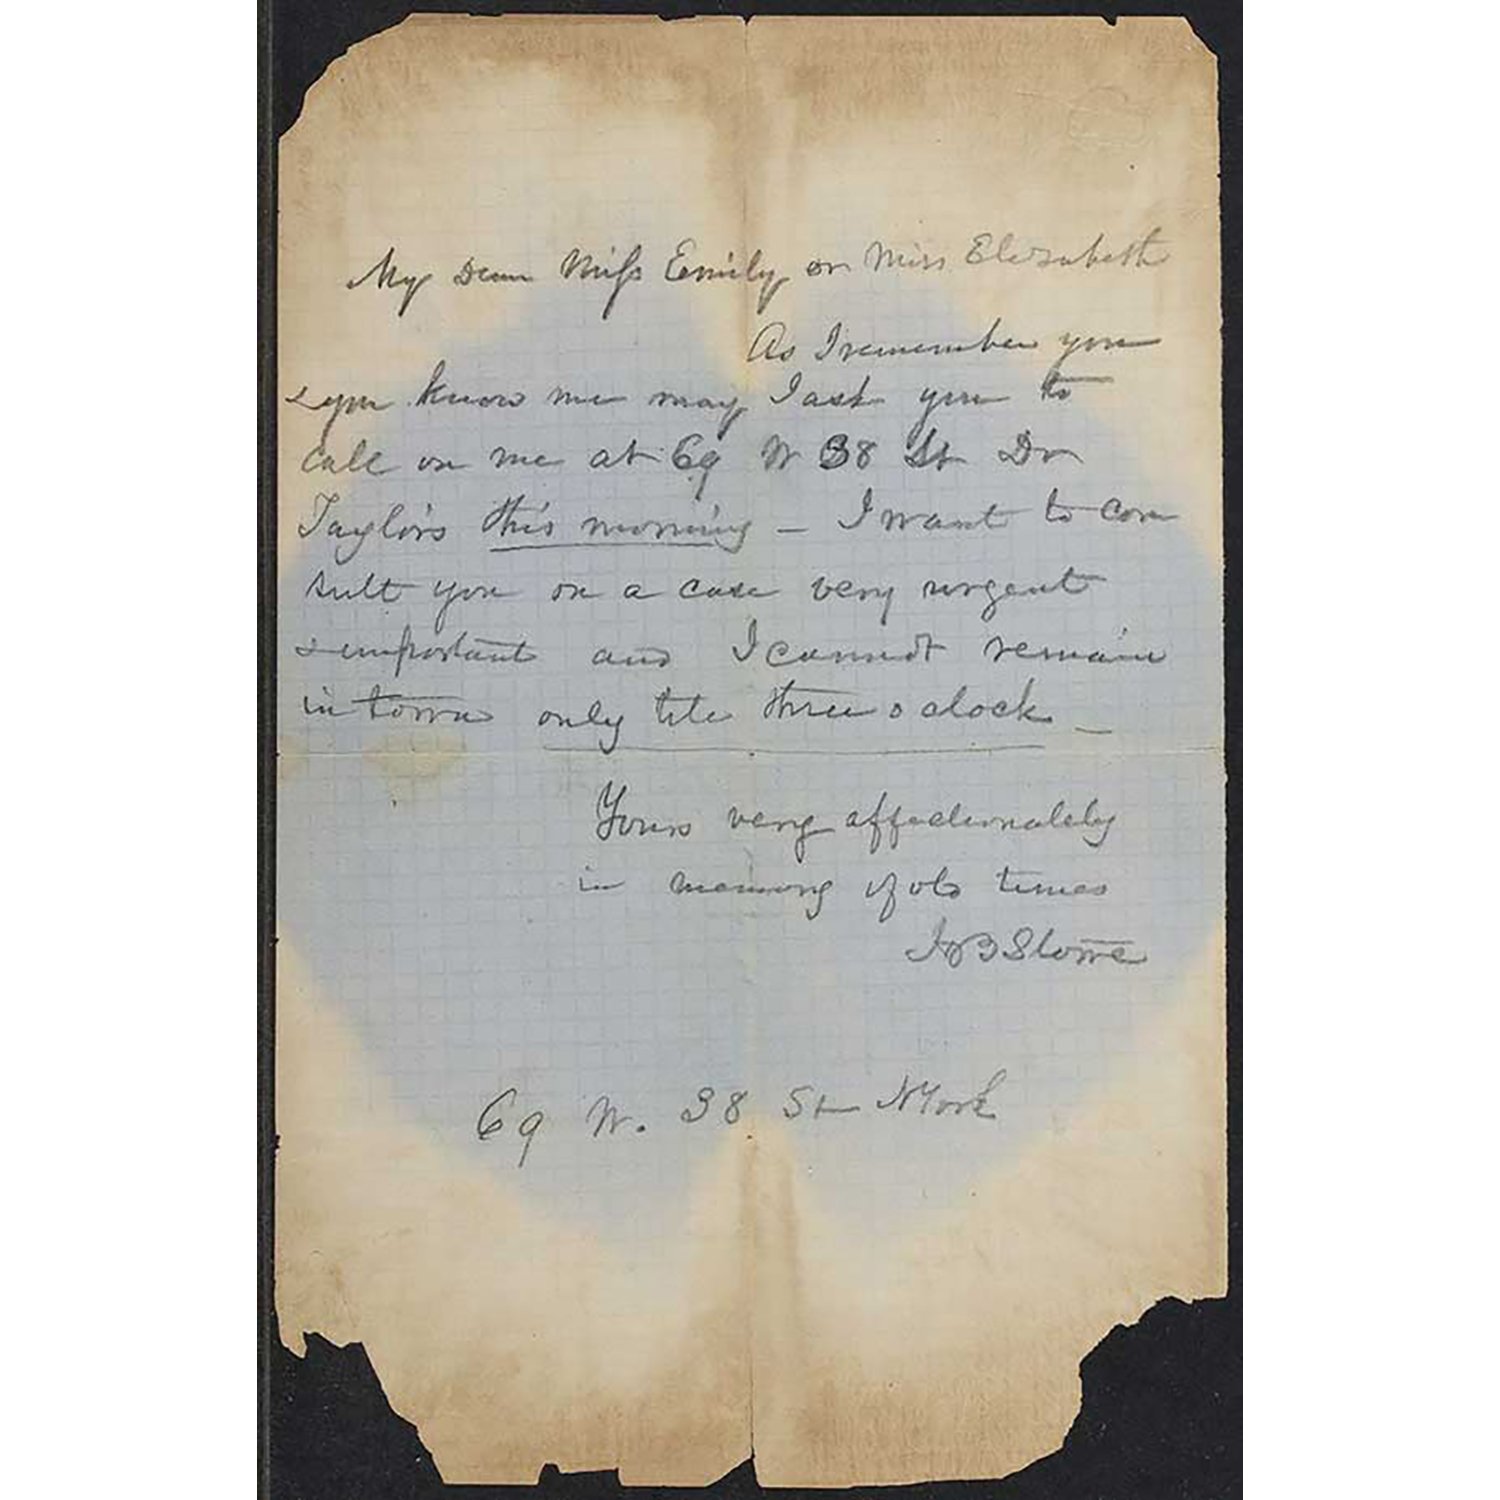 note-from-harriet-beecher-stowe-requesting-a-visit-from-emily-or-elizabeth-blackwell_courtesy-of-schlesinger-library_600px.jpg